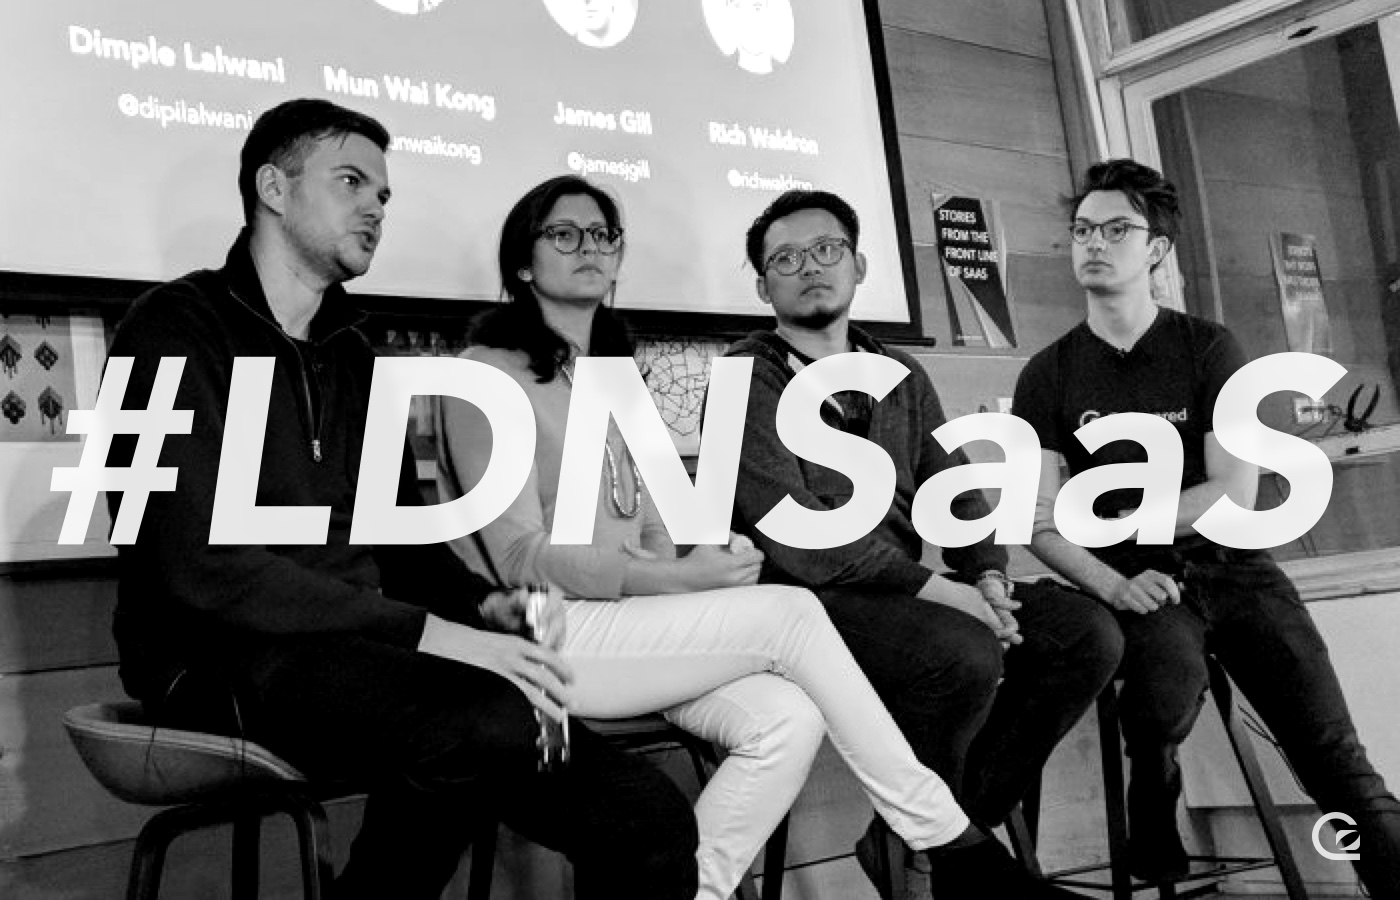 LDNSaaS - our fifth London SaaS Meetup